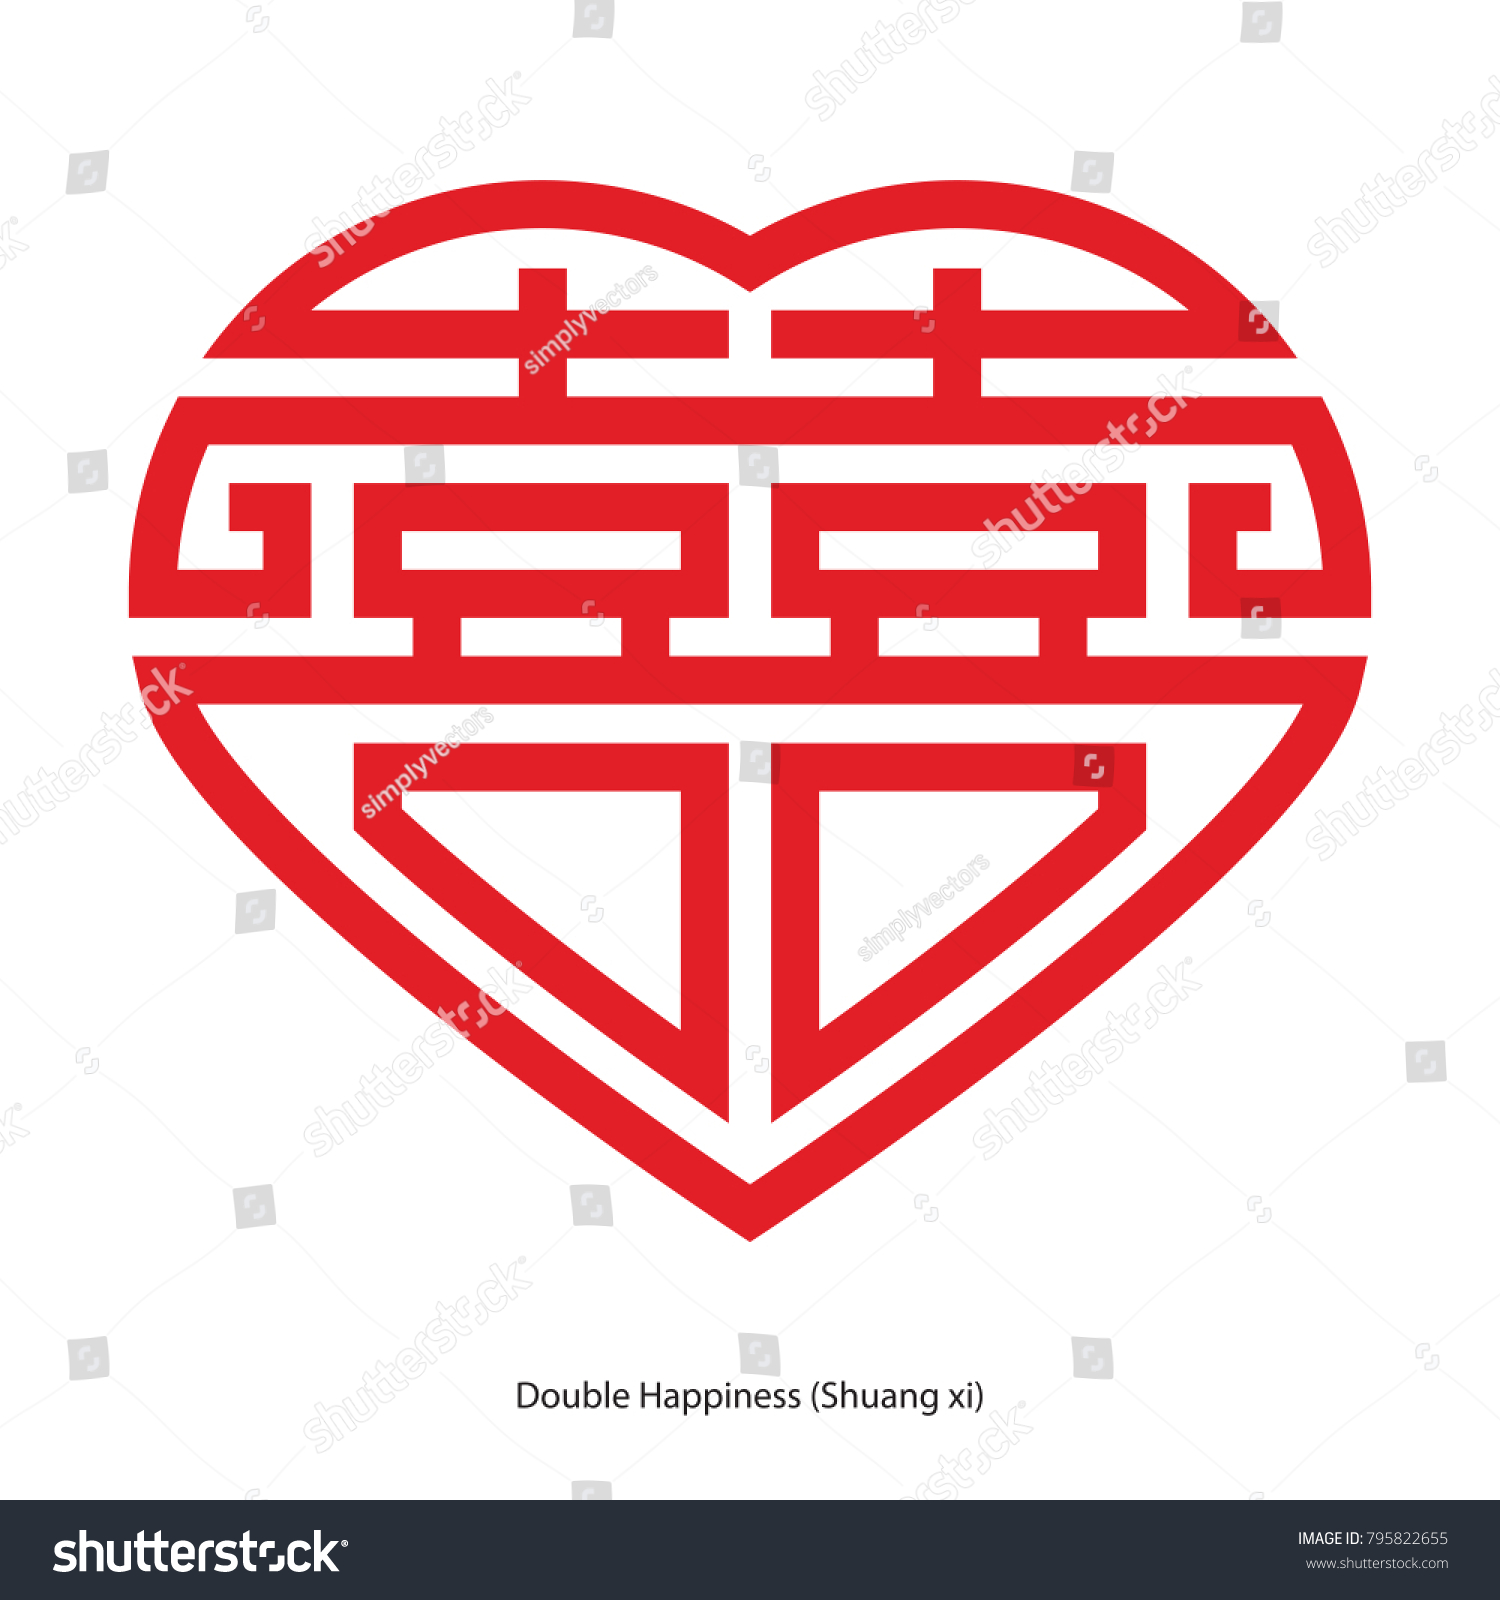 Chinese character double happiness heart shape stock vector chinese character double happiness in heart shape chinese traditional ornament design commonly used as biocorpaavc